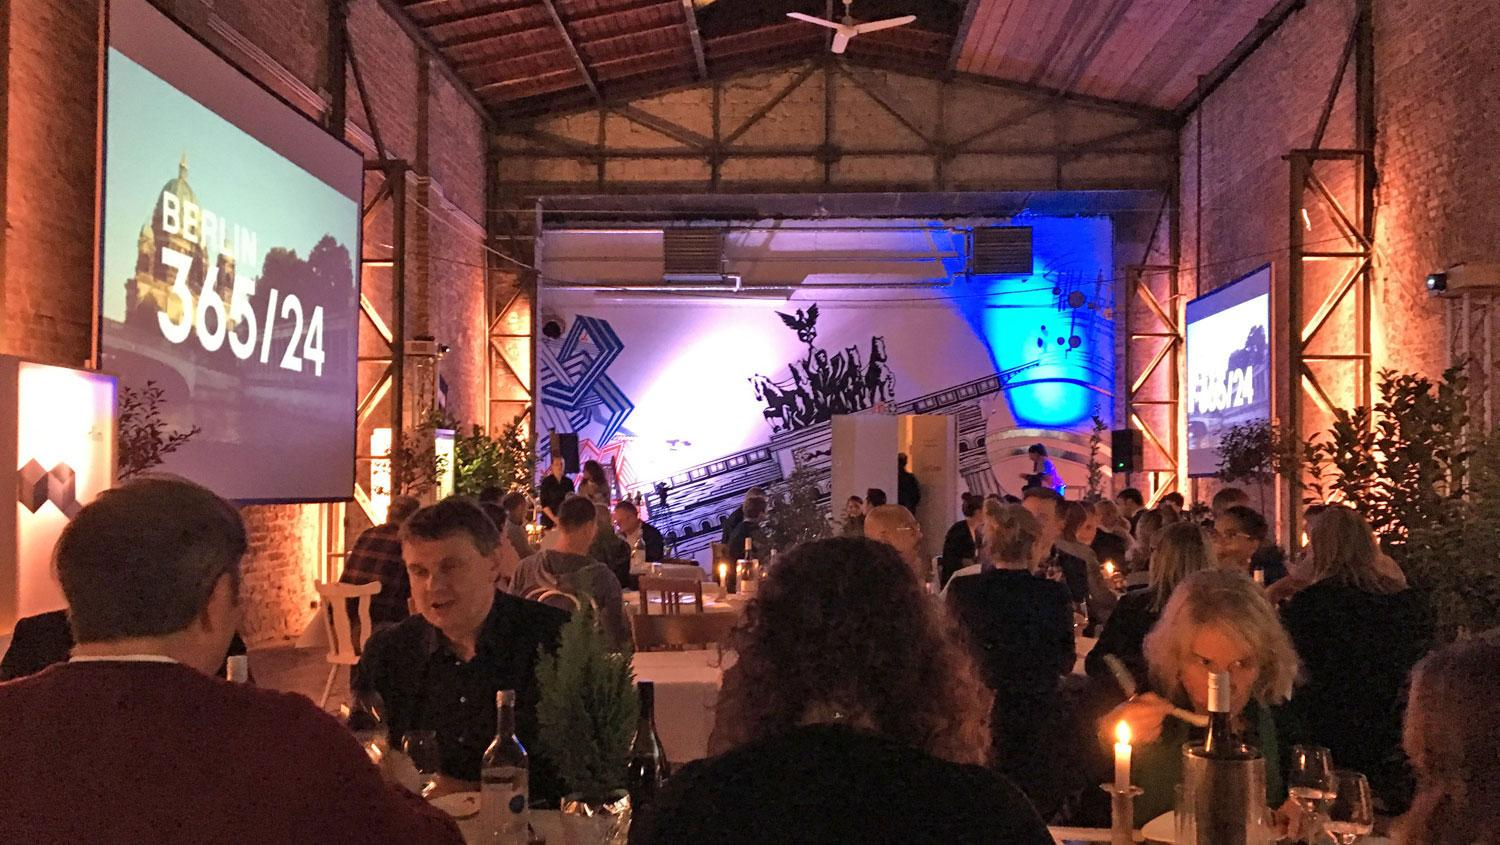 So sah das Pop-up-Restaurant in Köln-Ehrenfeld aus.